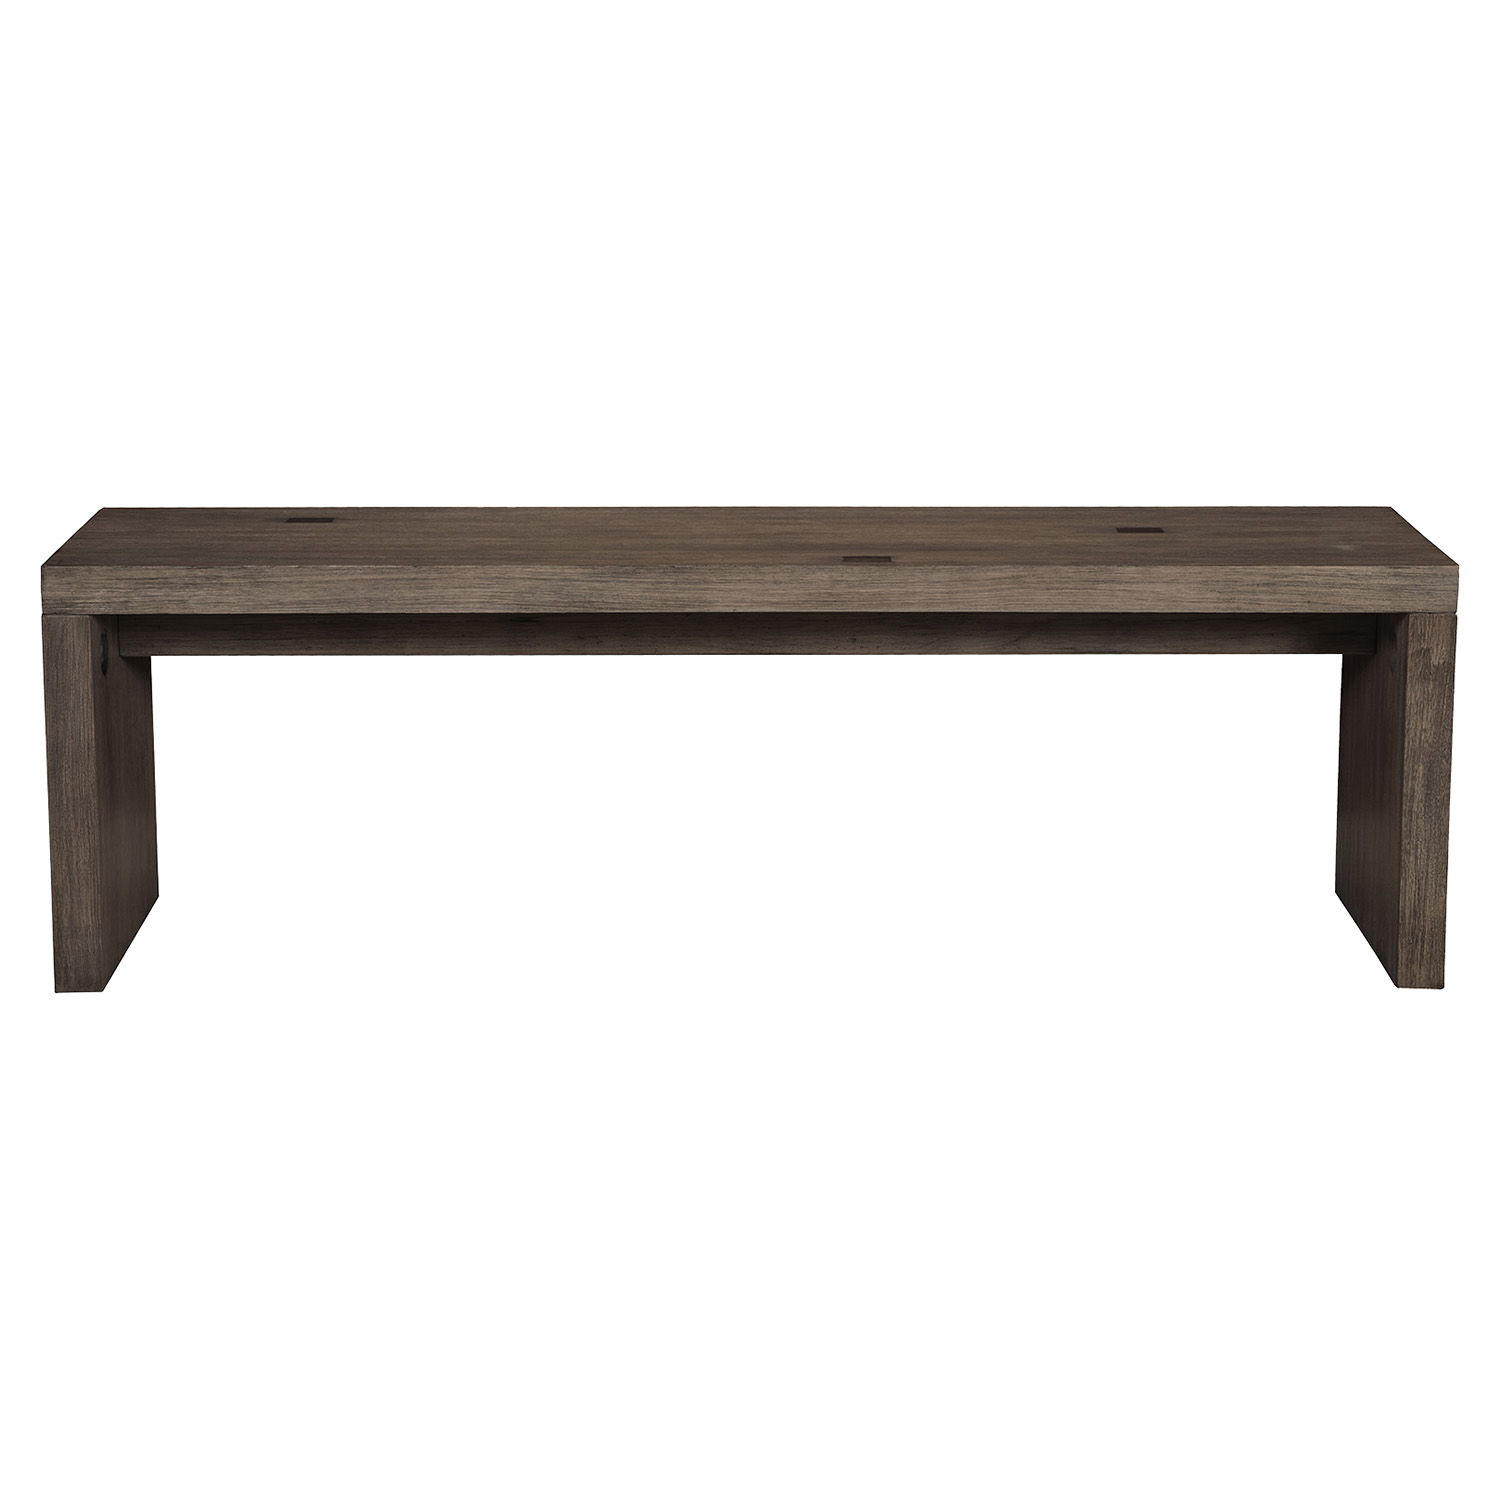 Fiji Bench - Weathered Gray